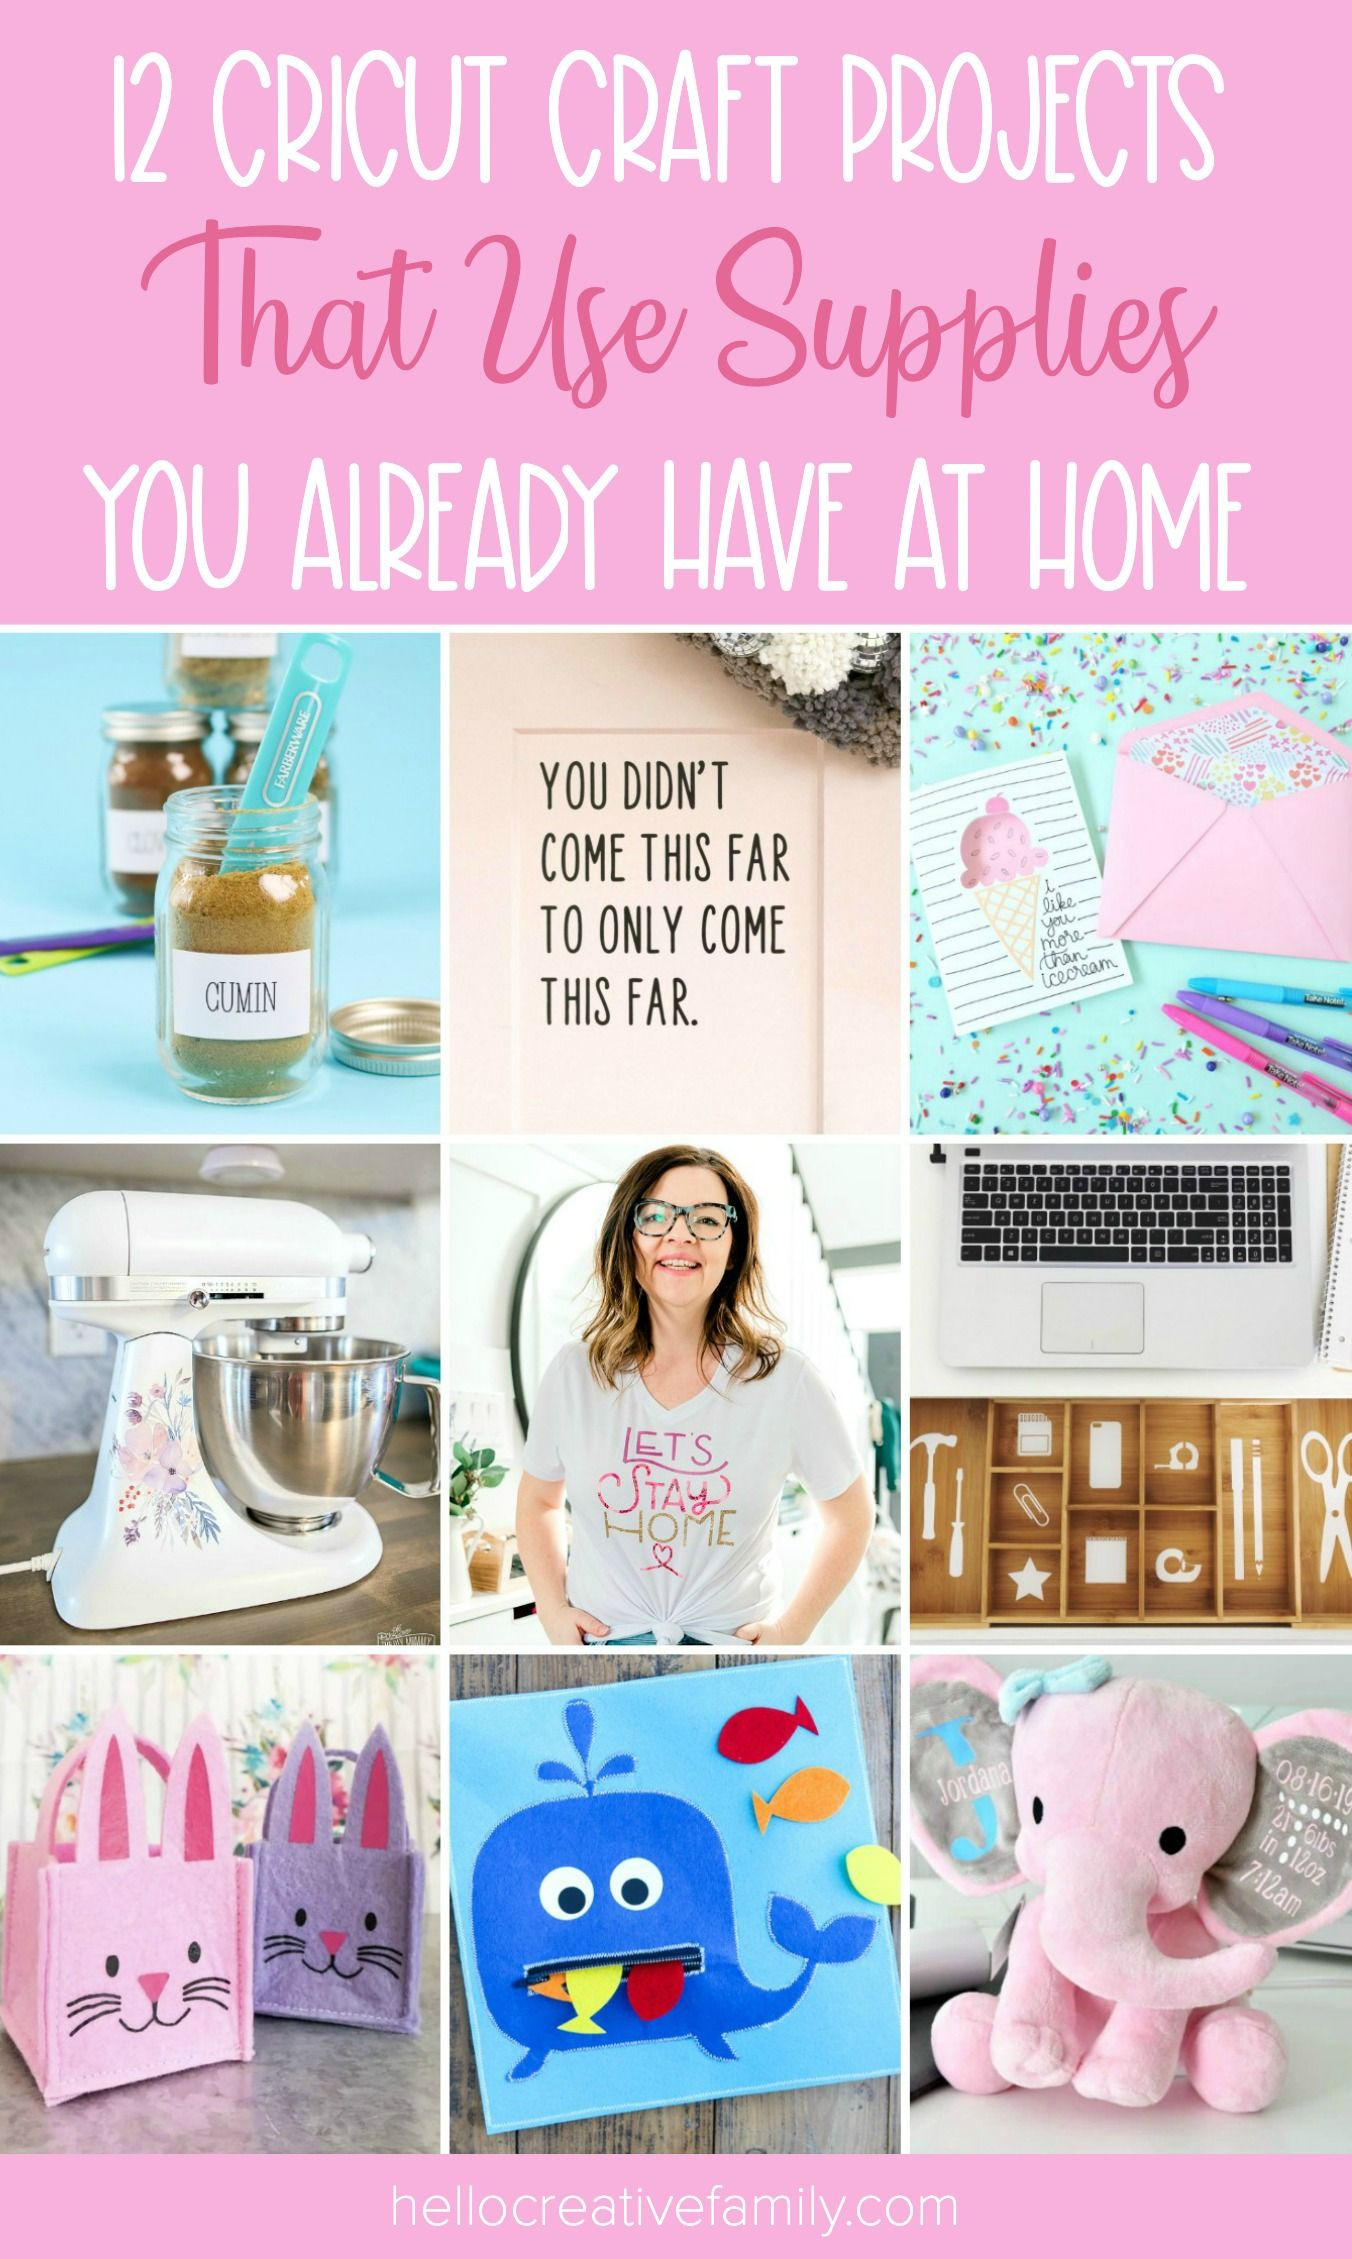 12 Cricut Craft Projects That Use Supplies You Already Have At Home